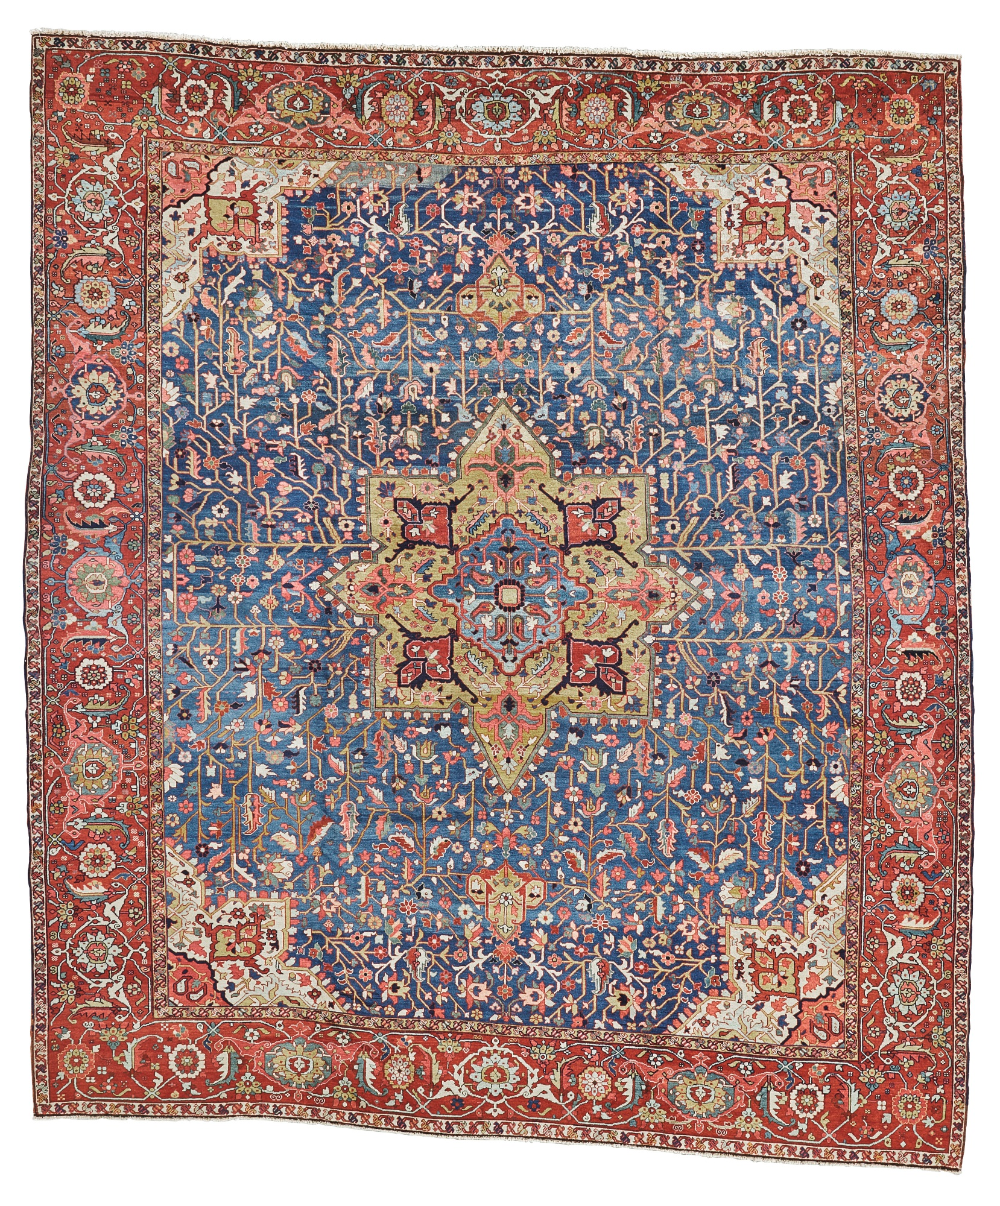 Heriz Carpet Northwest Persia Approximately 377 By 319cm 12ft 4in 10ft 6in Circa 1900 In 2020 Antique Indian Rug Rugs On Carpet Antique Persian Carpet